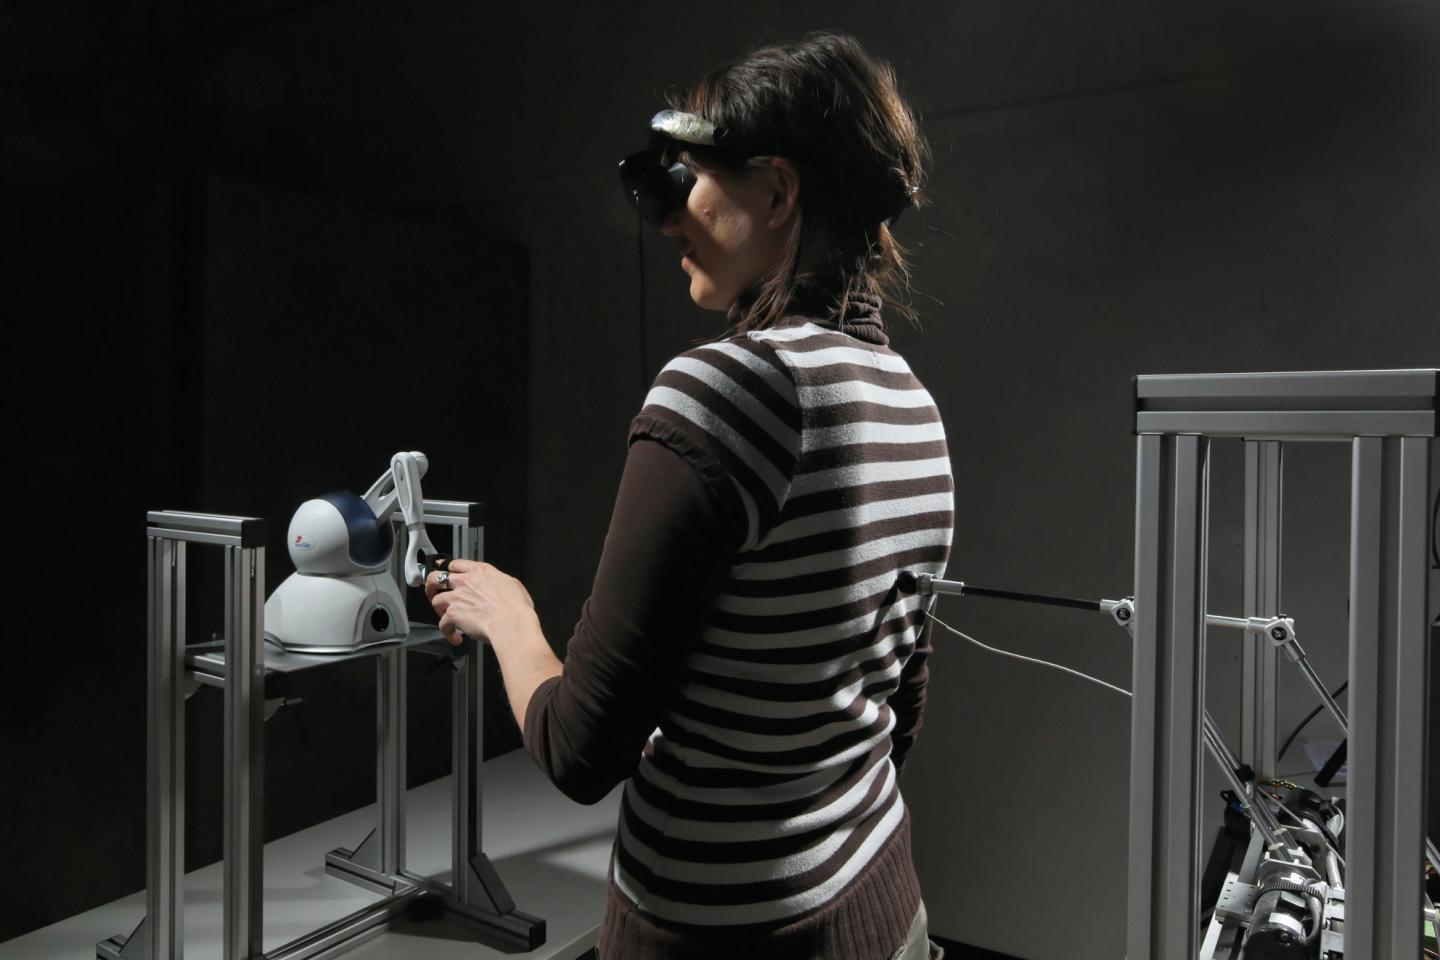 Experiencing the Ghost Illusion in the Lab